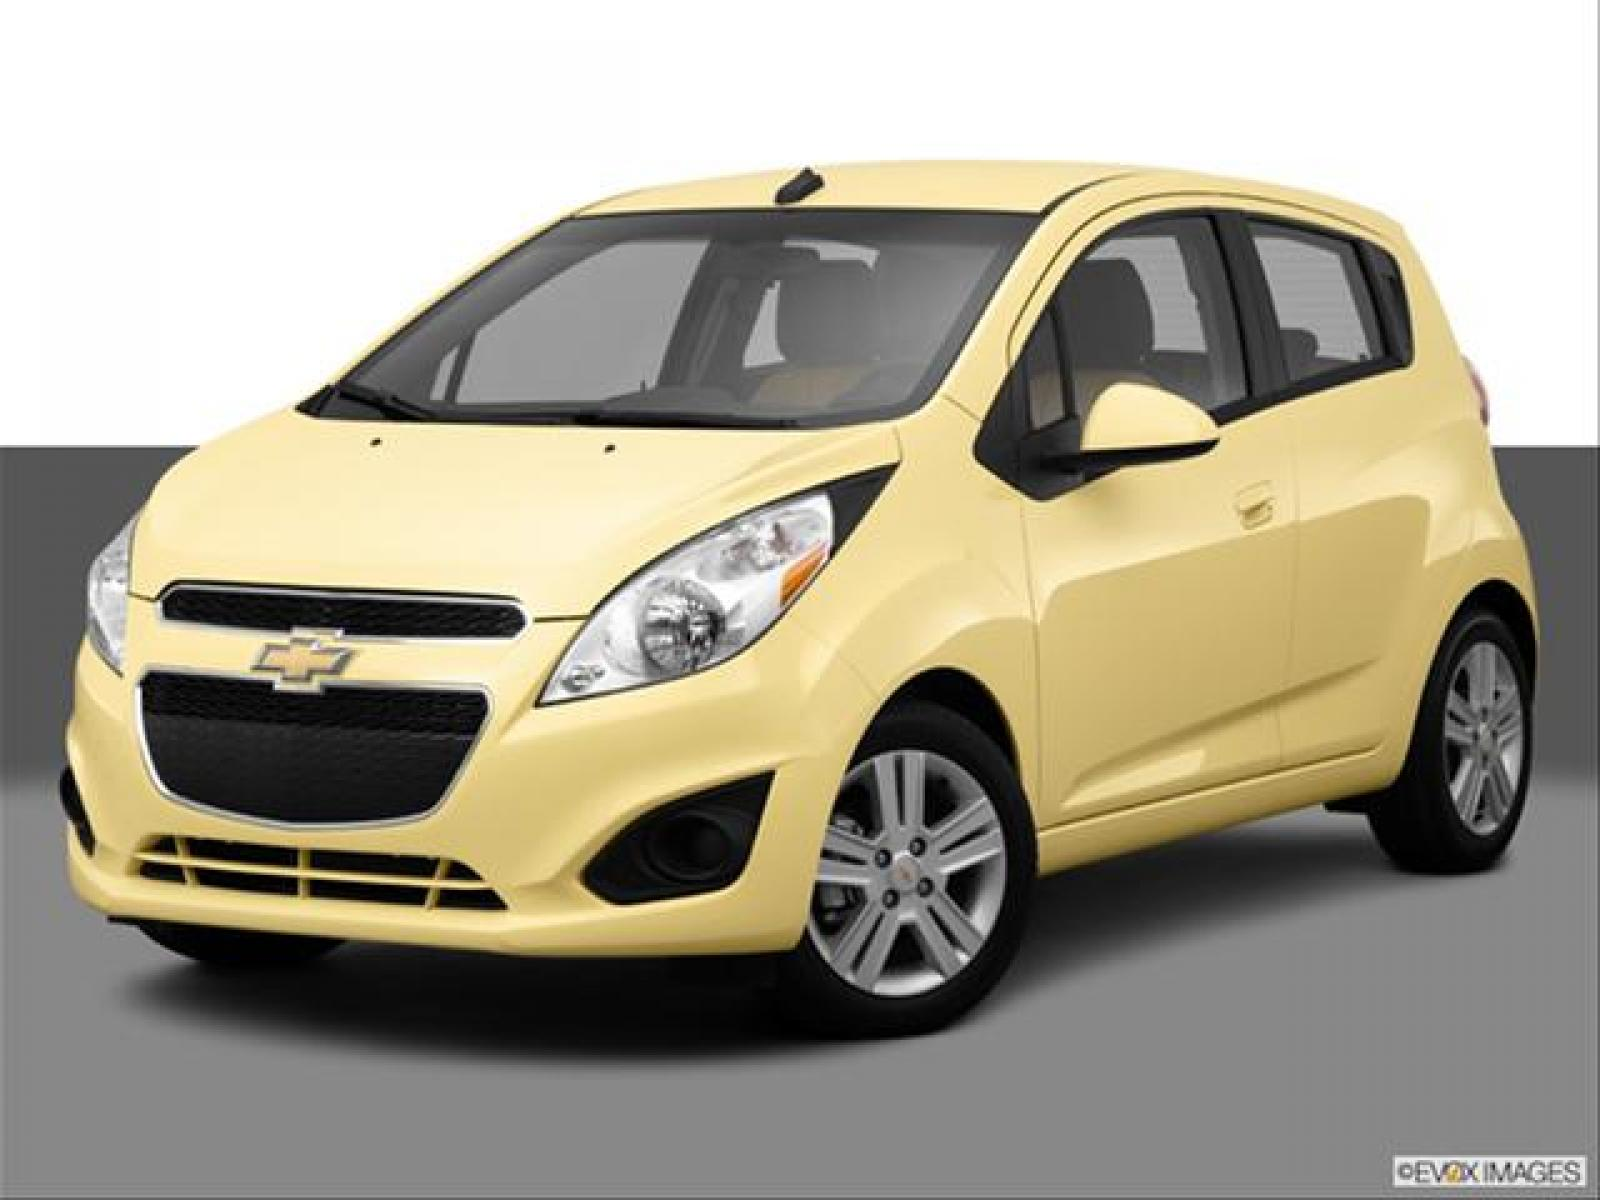 chevrolet spark yellow with Chevrolet Spark on Local Color Unusual Paint Hues 2017 Chicago Auto Show likewise Cartel Para Bano De Damas C6epGdGxq as well 10456907 likewise 673147475527258759 besides 404972191468328462.